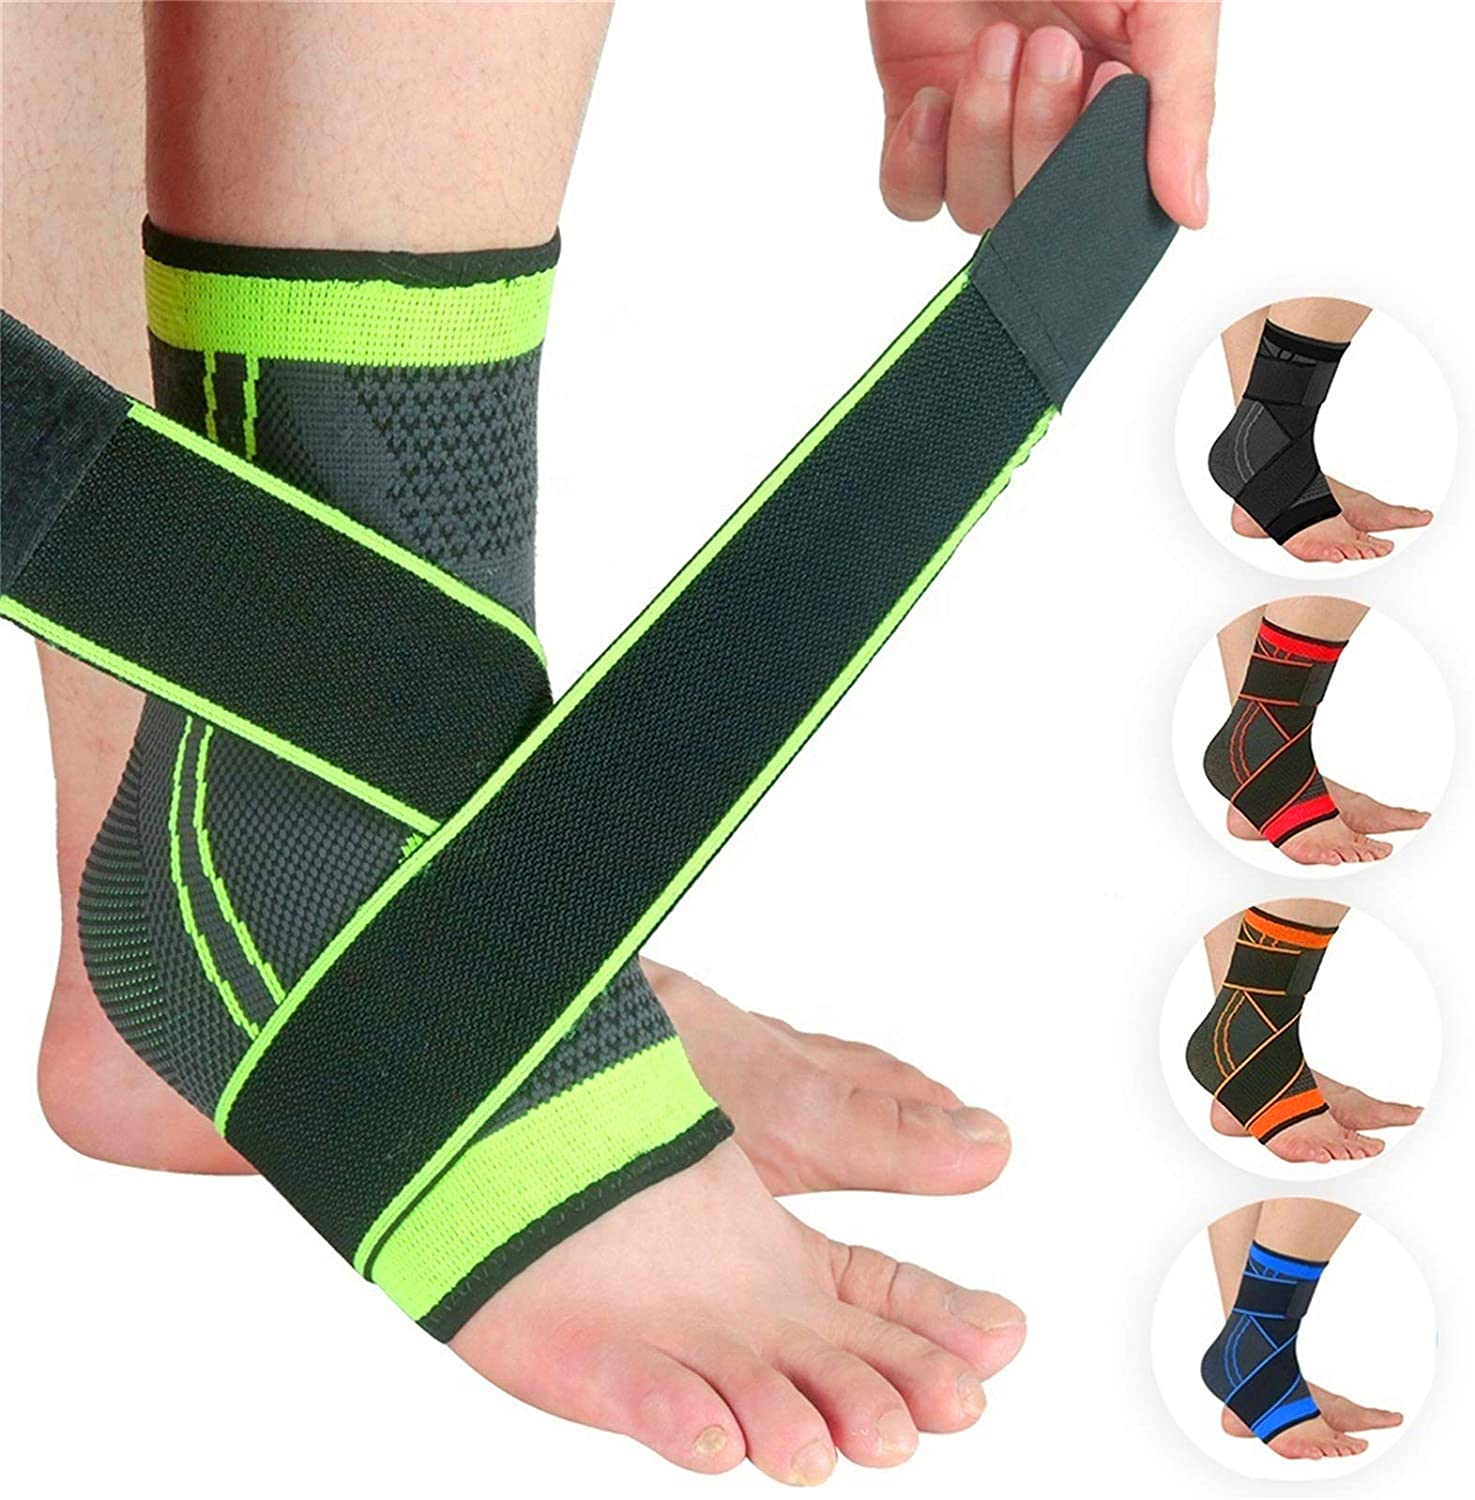 Ankle Brace Compression Support Adjustable Sleeve (Pair) for Injury Recovery, Joint Pain and More, Arch Brace Support & Foot Stabilizer, Ankle Wrap Protect Against Ankle Sprains or Swelling